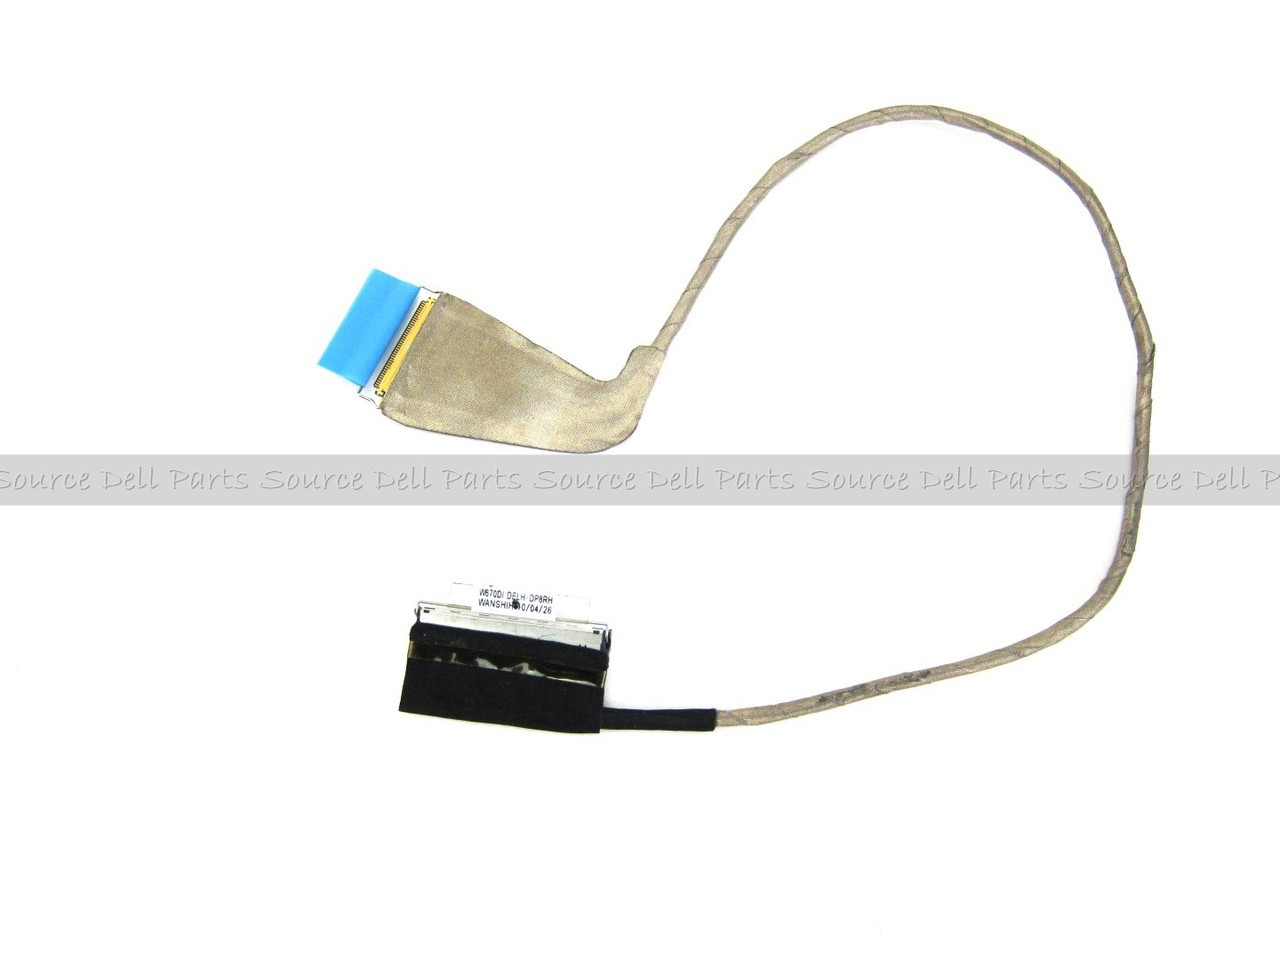 Alienware M15x LCD Video Display Ribbon Cable - DP8RH